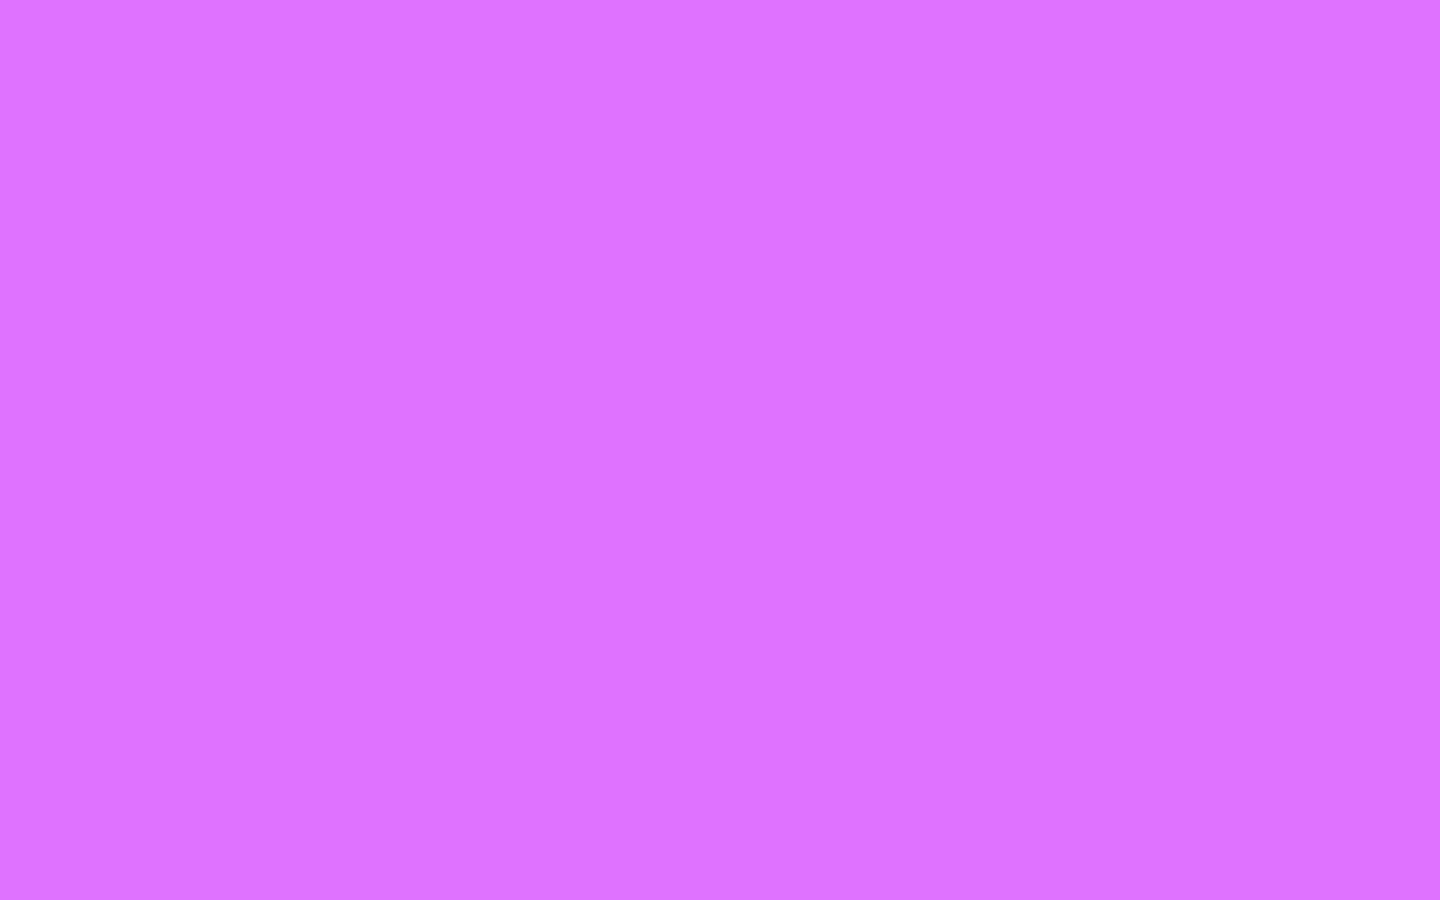 1440x900 Heliotrope Solid Color Background